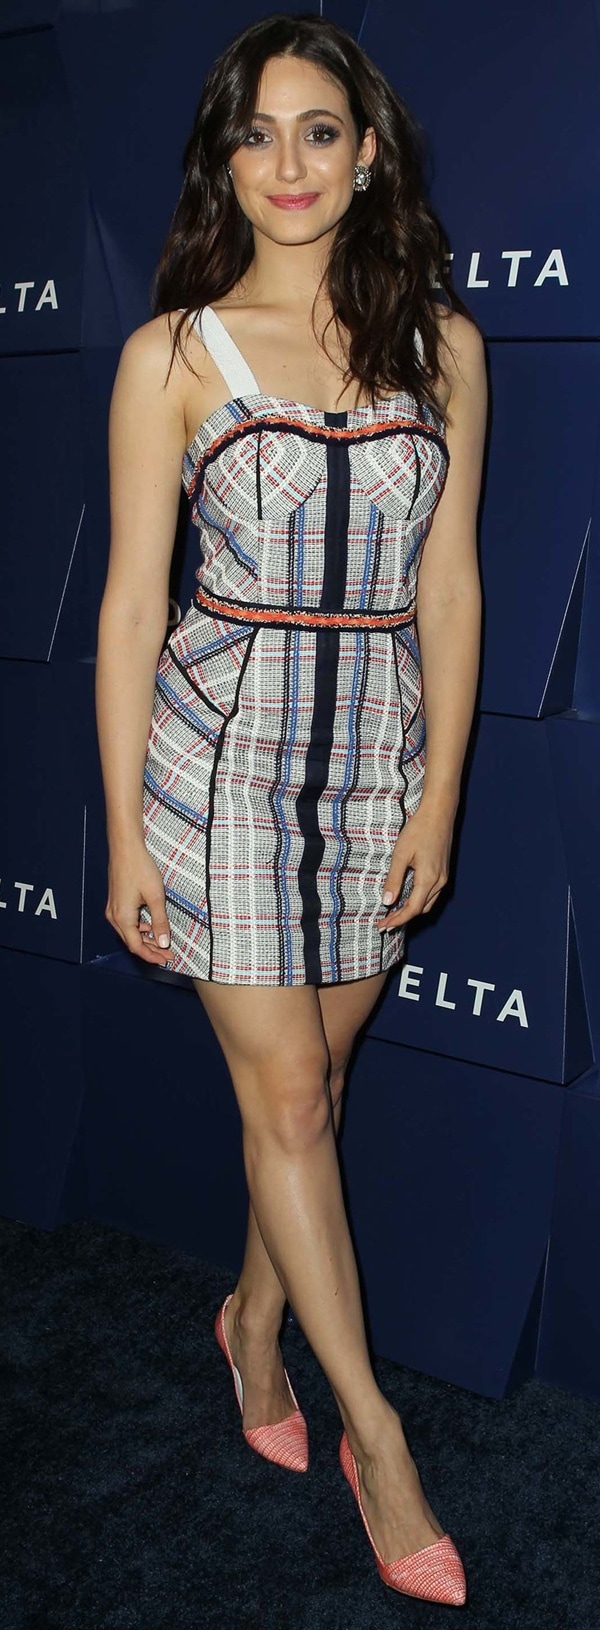 Emmy Rossum paraded her legs in a plaid Rebecca Minkoff dress